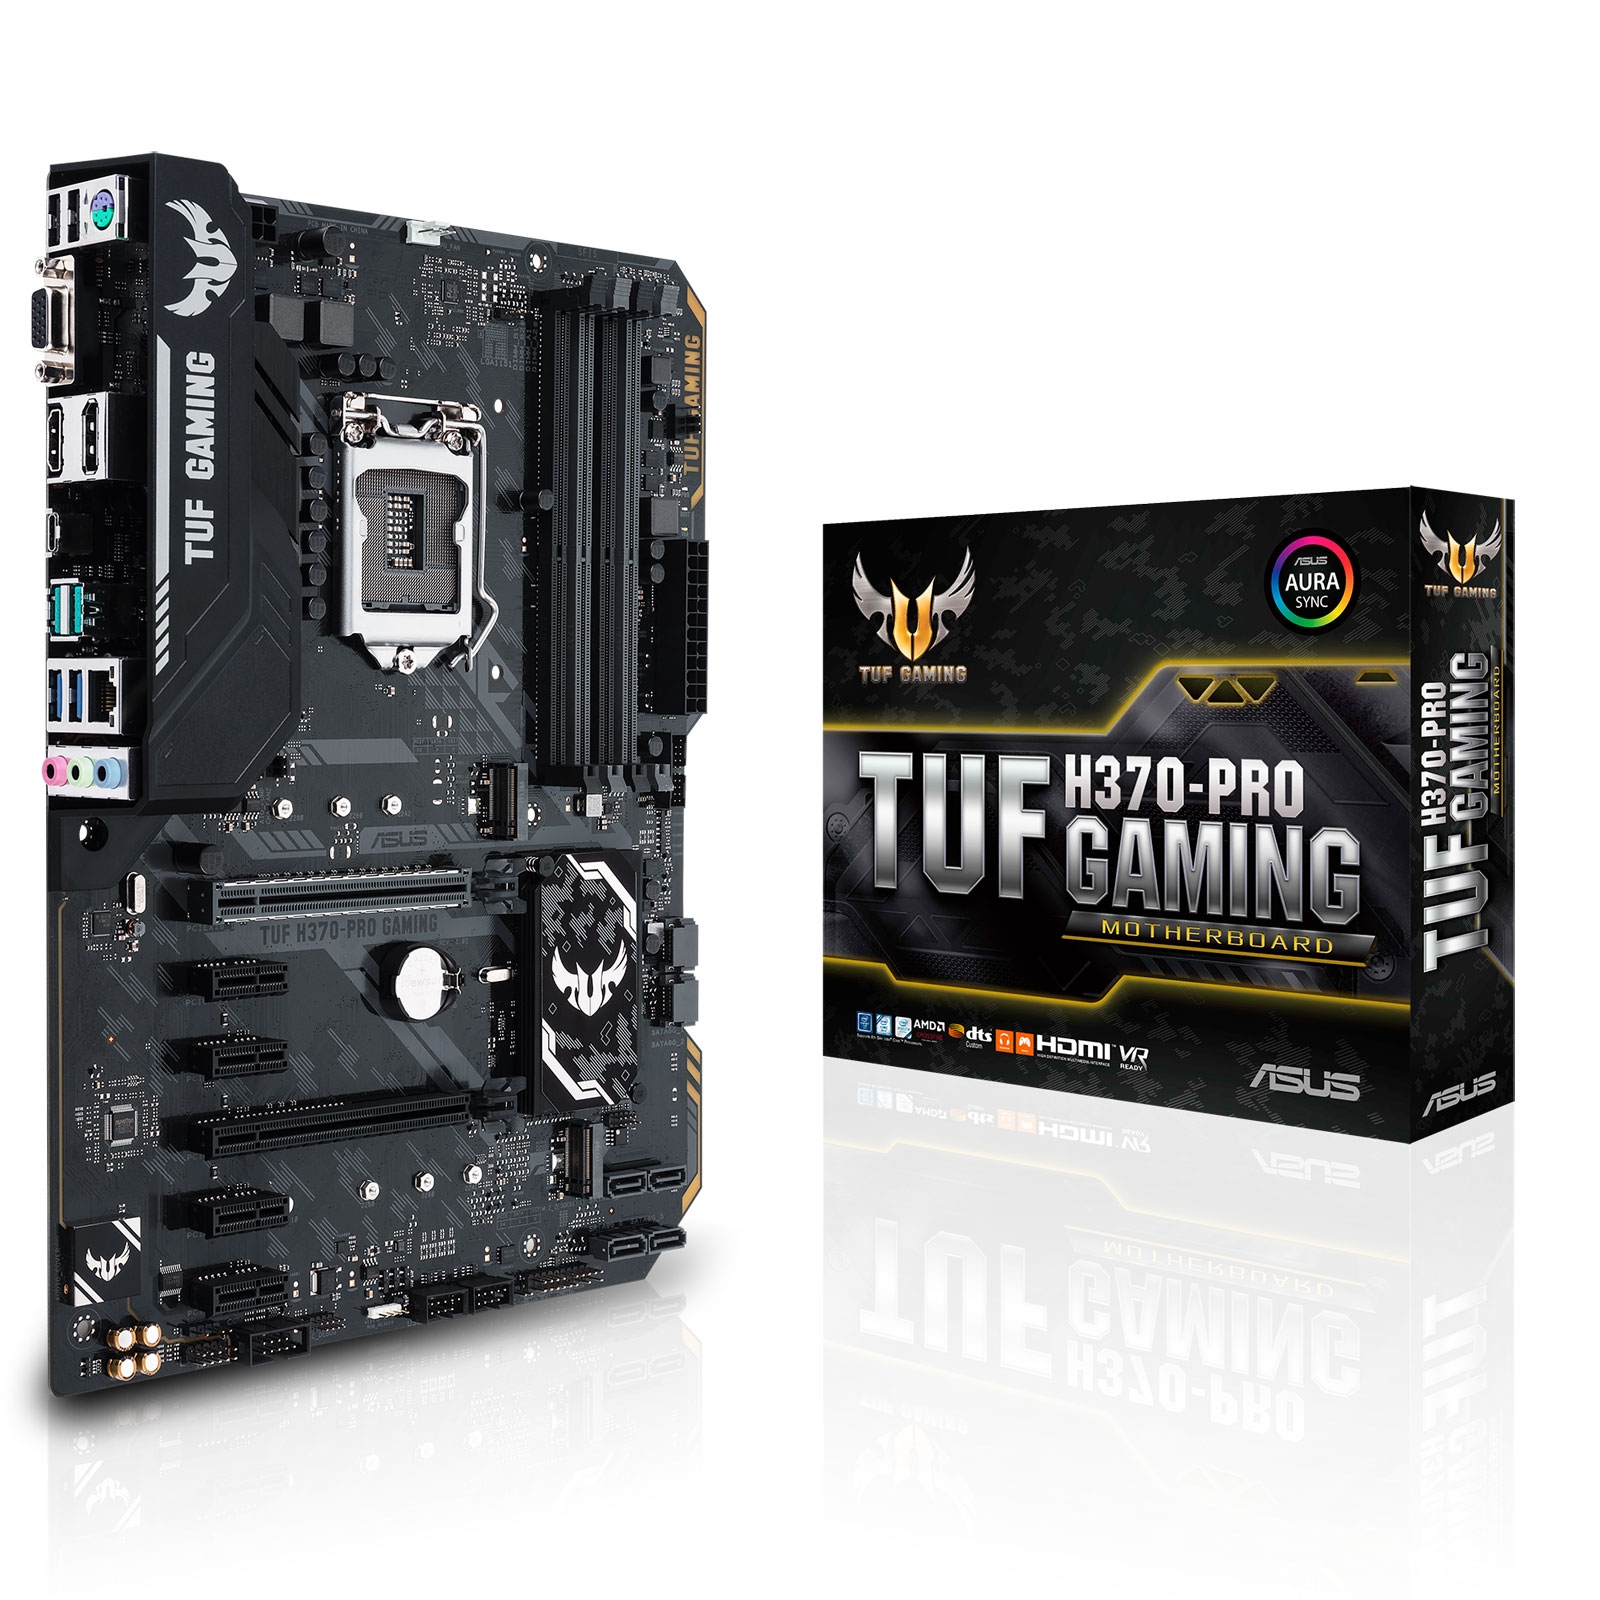 Asus H370-PRO GAMING WI-FI ATX DDR4 - Carte mère Asus - 0